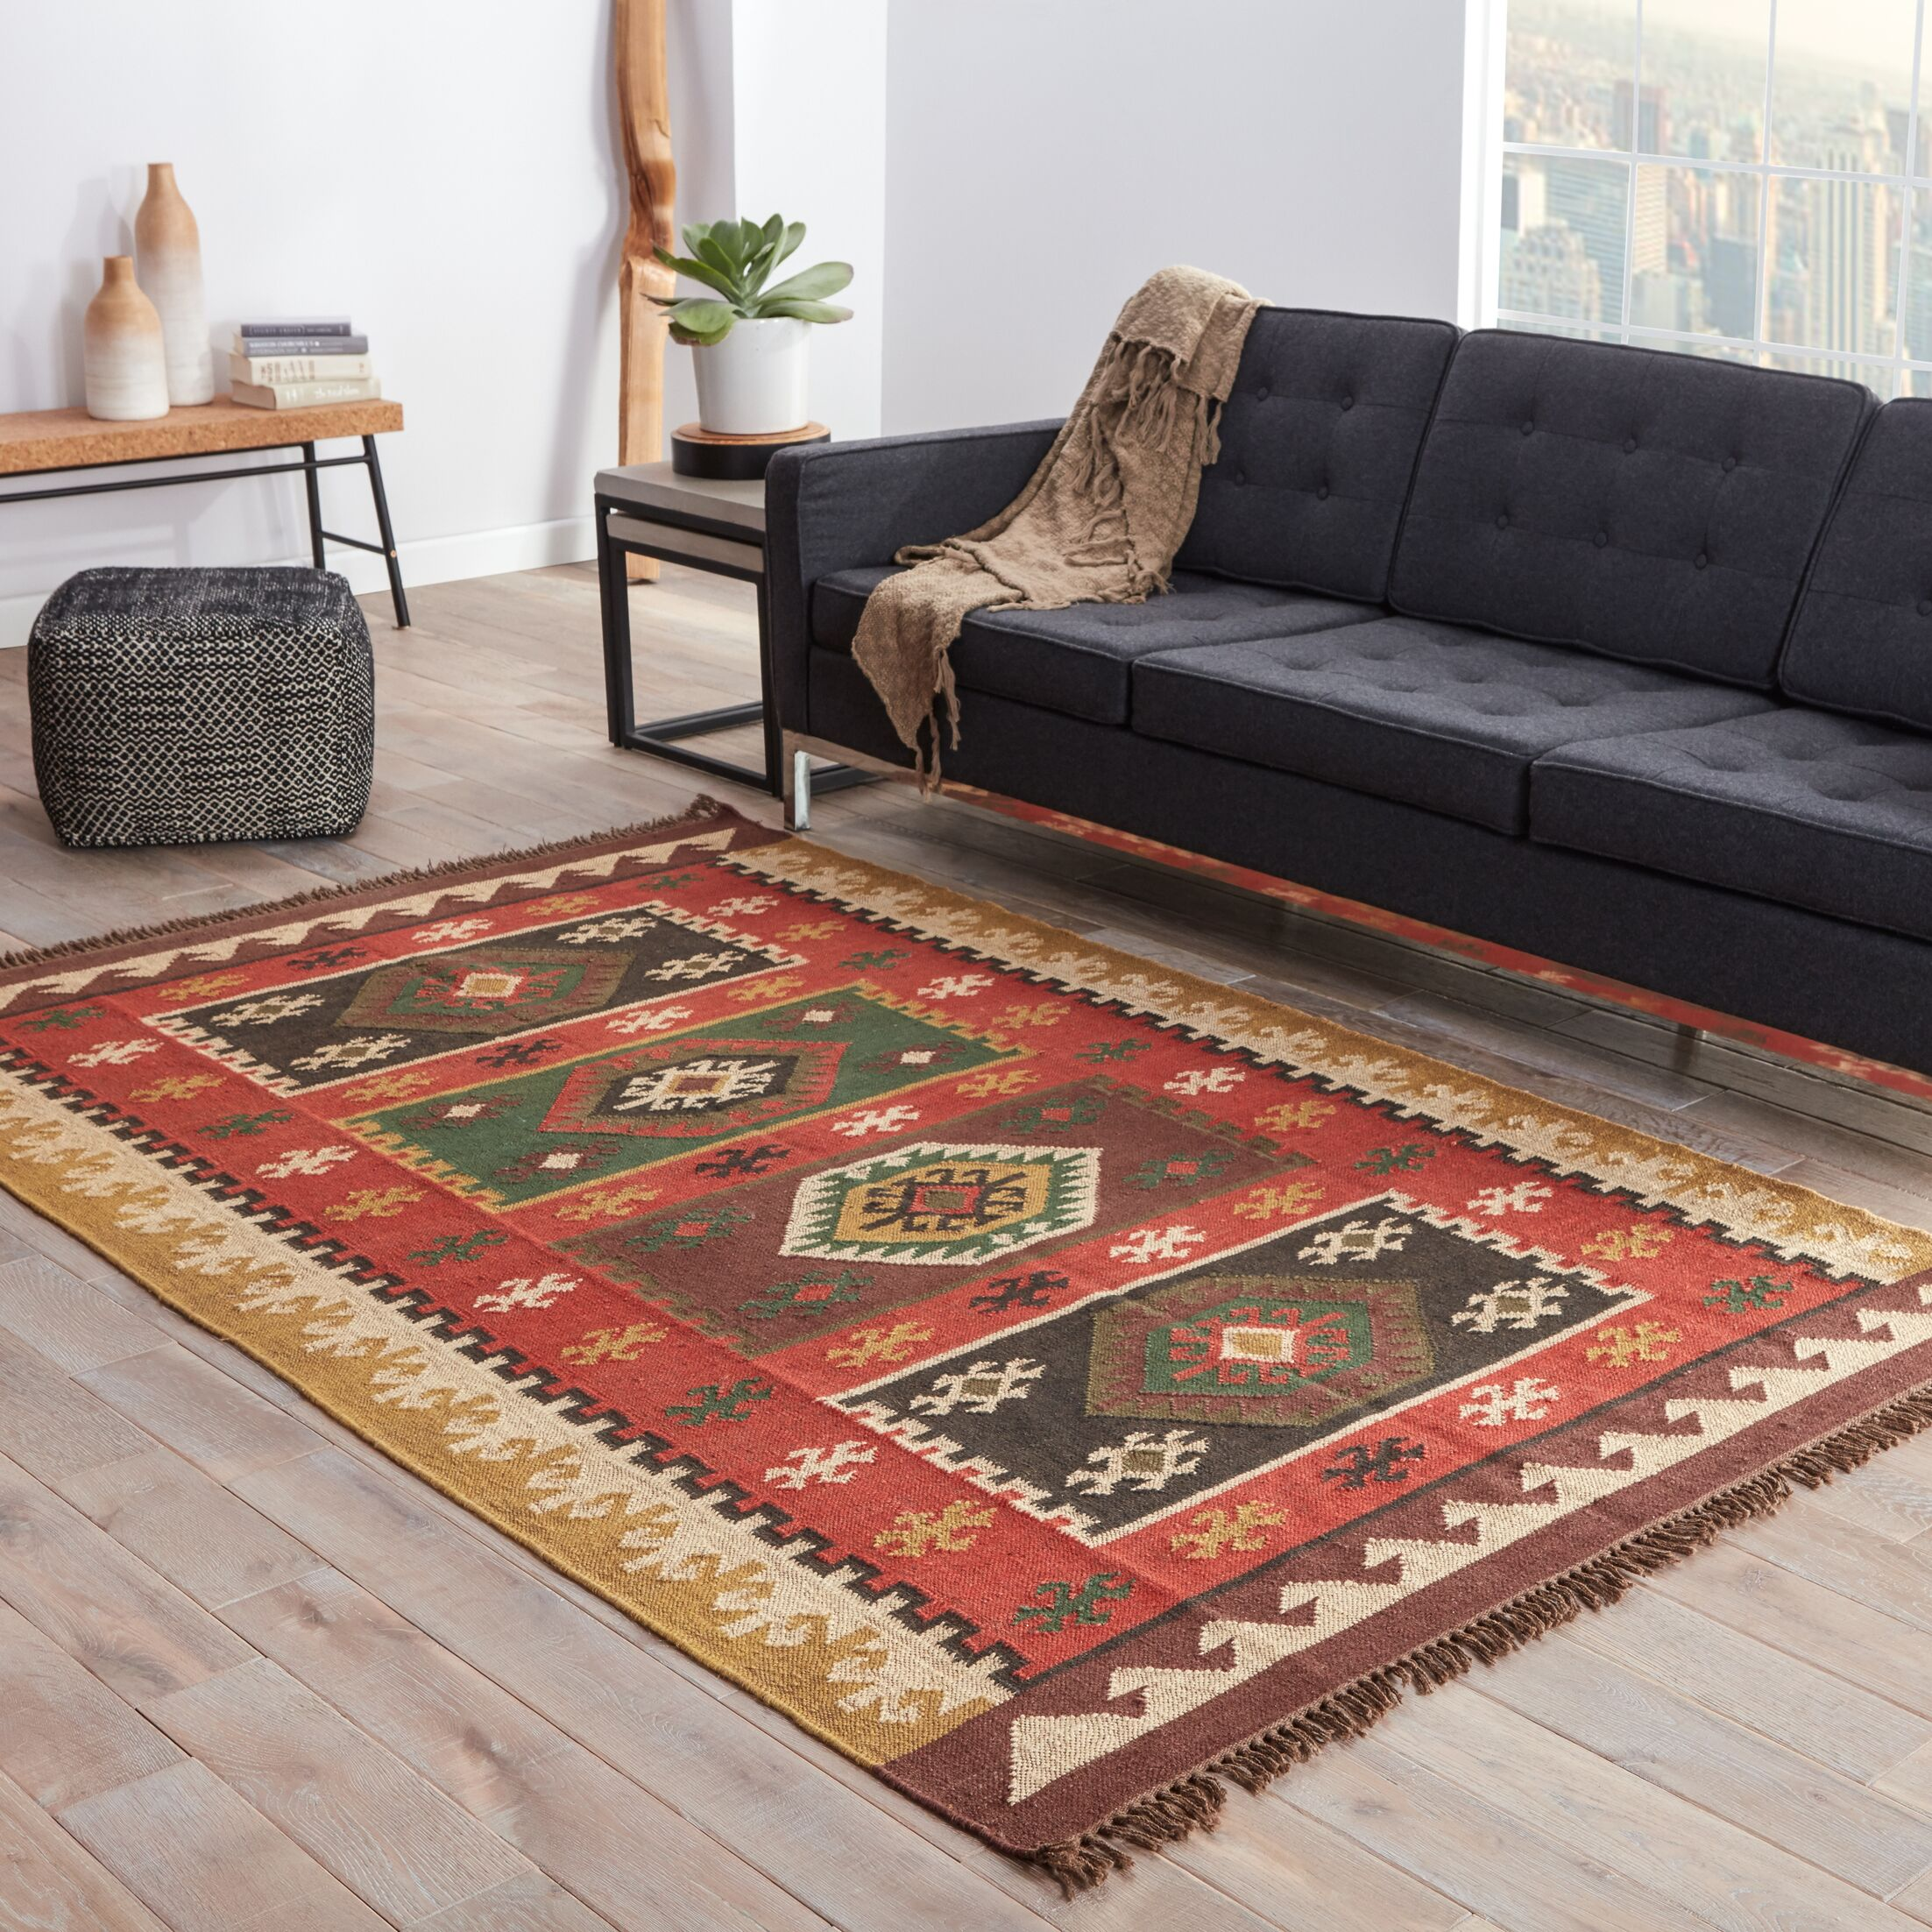 Addre Red/Yellow Area Rug Rug Size: Rectangle 9' X 12'